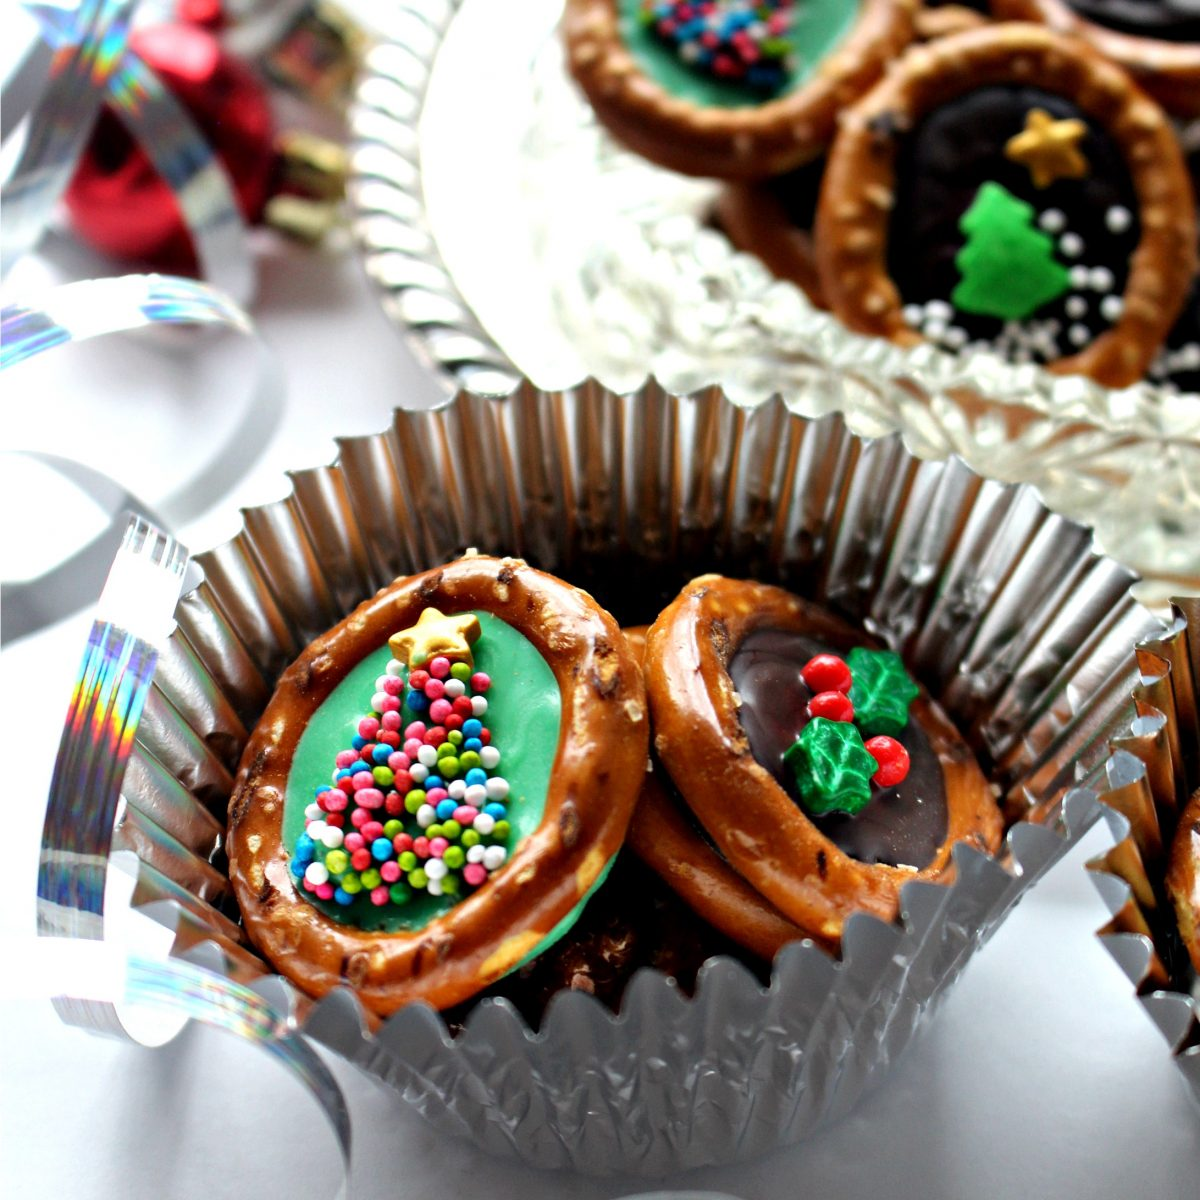 Christmas Pretzels in a silver foil cupcake liner.